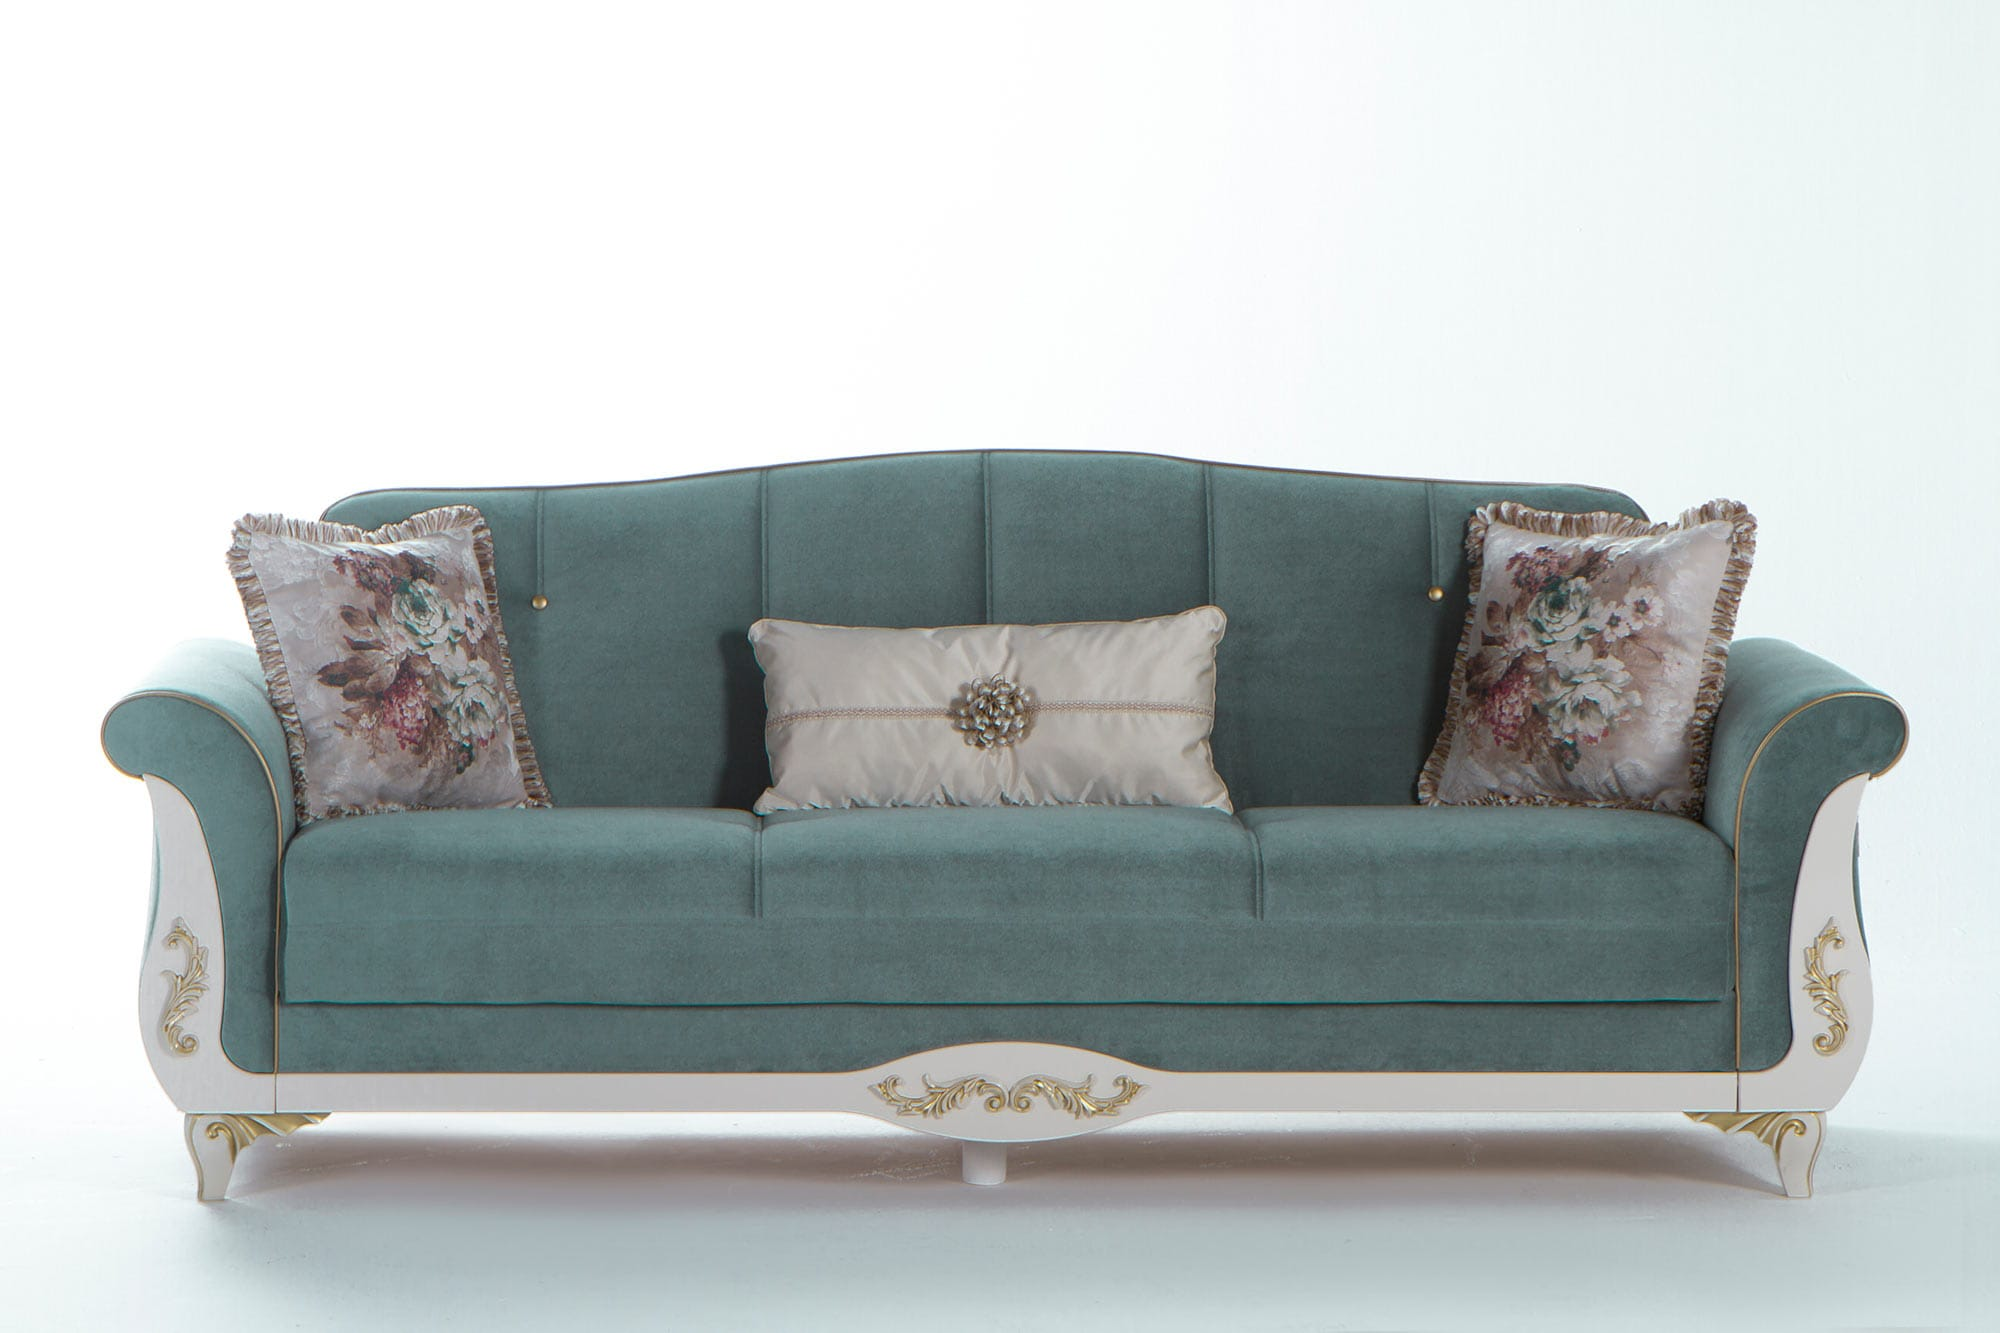 Astoria Caprice Seafoam Green Convertible Sofa Bed By Istikbal Sunset